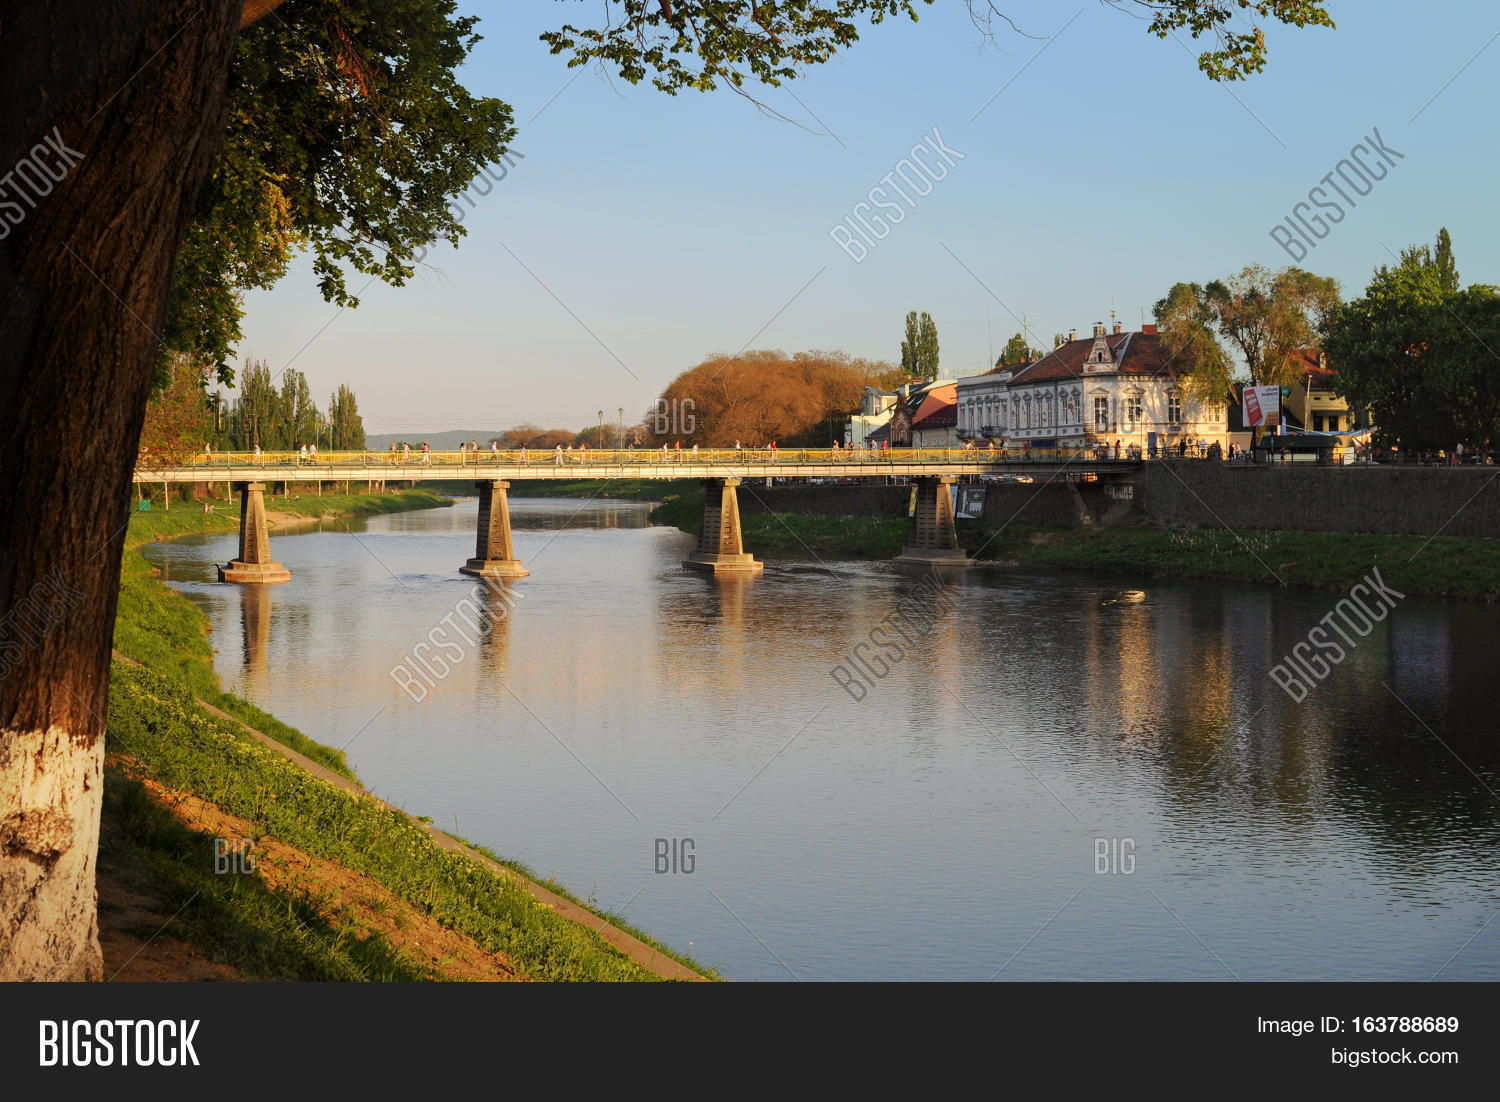 river,ukraine,uzhhorod,uzh,city,sky,landscape,old,blue,town,day,europe,cityscape,ukrainian,nature,beauty,green,people,sunset,travel,outdoor,architecture,tourism,riverside,beautiful,transcarpathia,summer,bridge,lifestyle,grass,water,bank,tree,trunk,branches,buildings,landmark,stone,house,view,warm